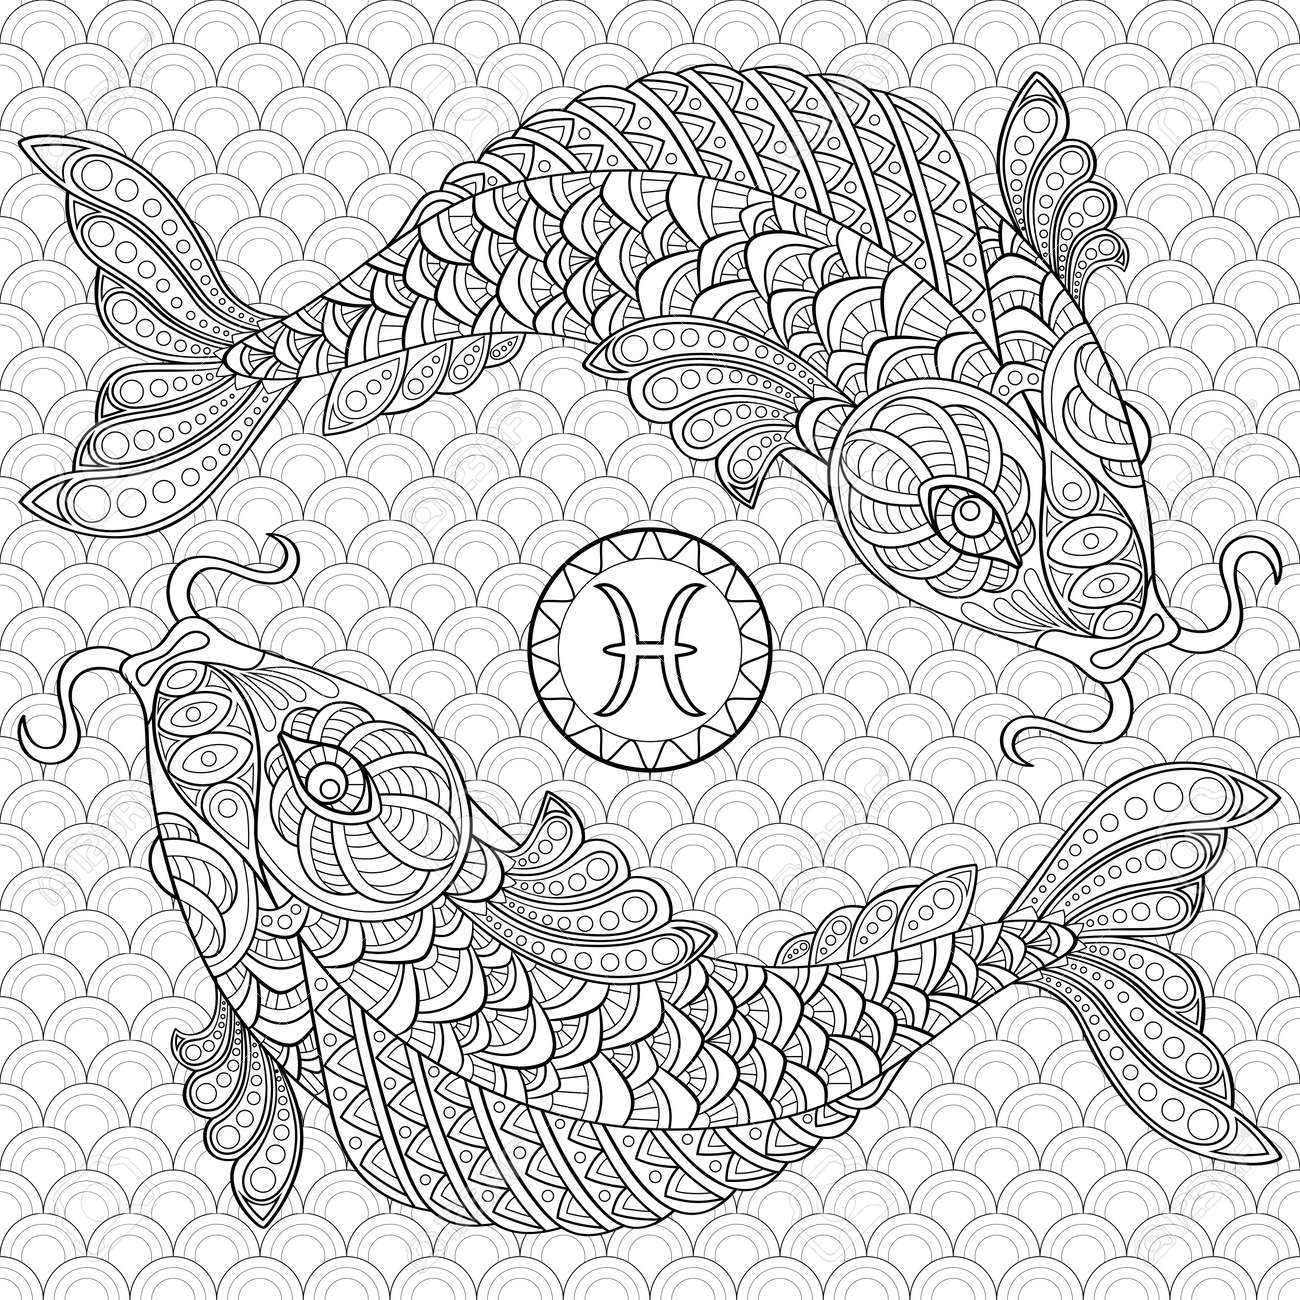 pisces koi fish chinese carps antistress coloring page